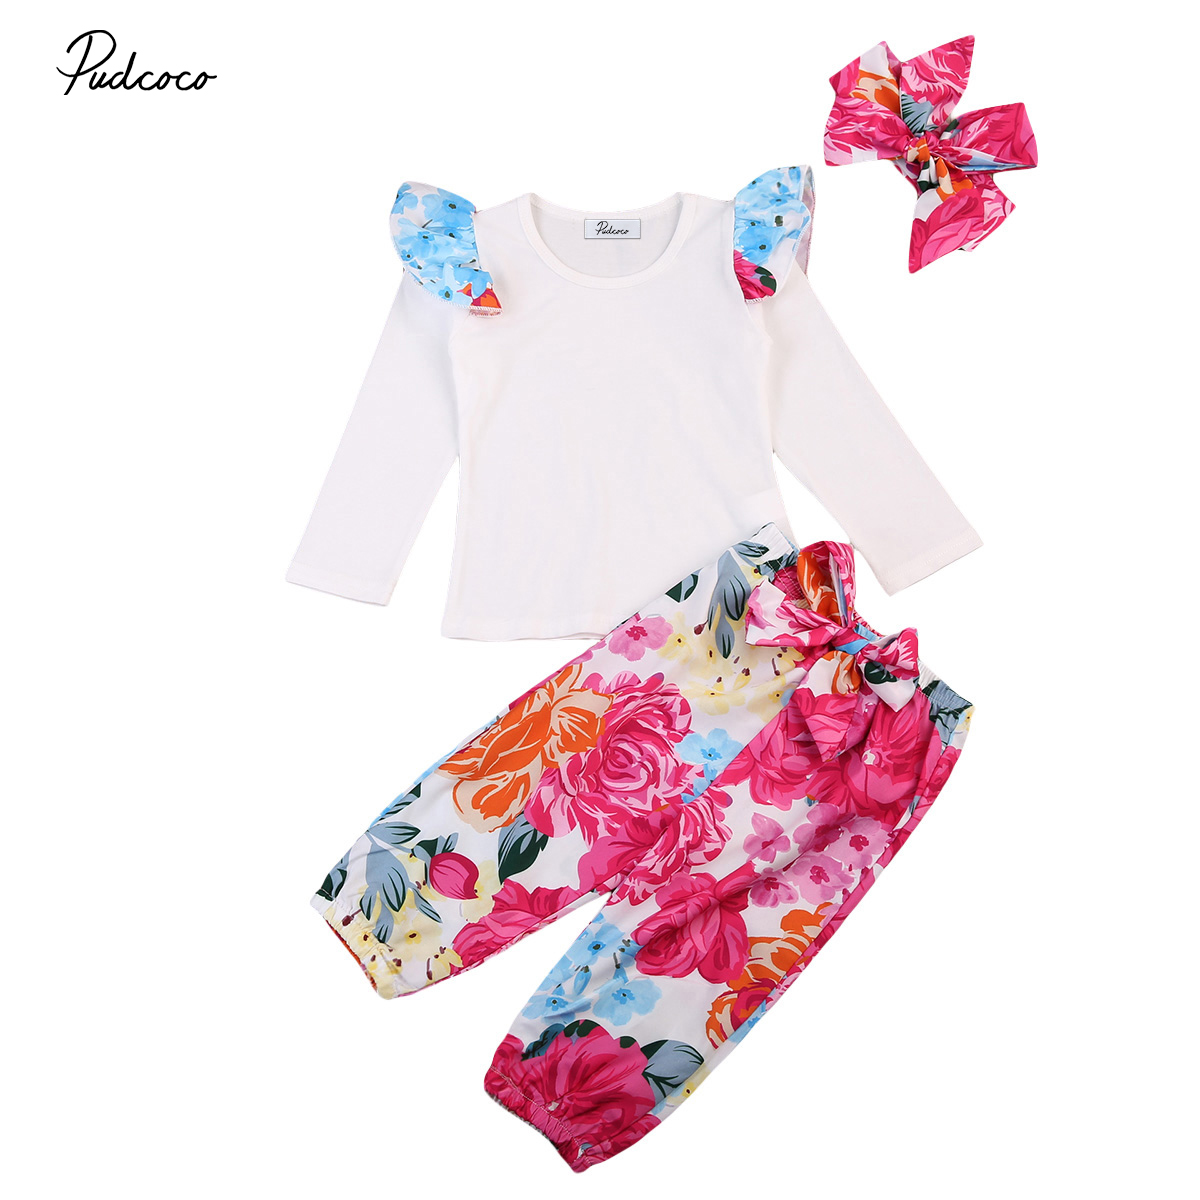 2017 Fashion Toddler Baby Girls Autumn Clothes Outfits Long Sleeve T-shirt Tops+Floral Leggings Pant Cute Infant Clothing Set